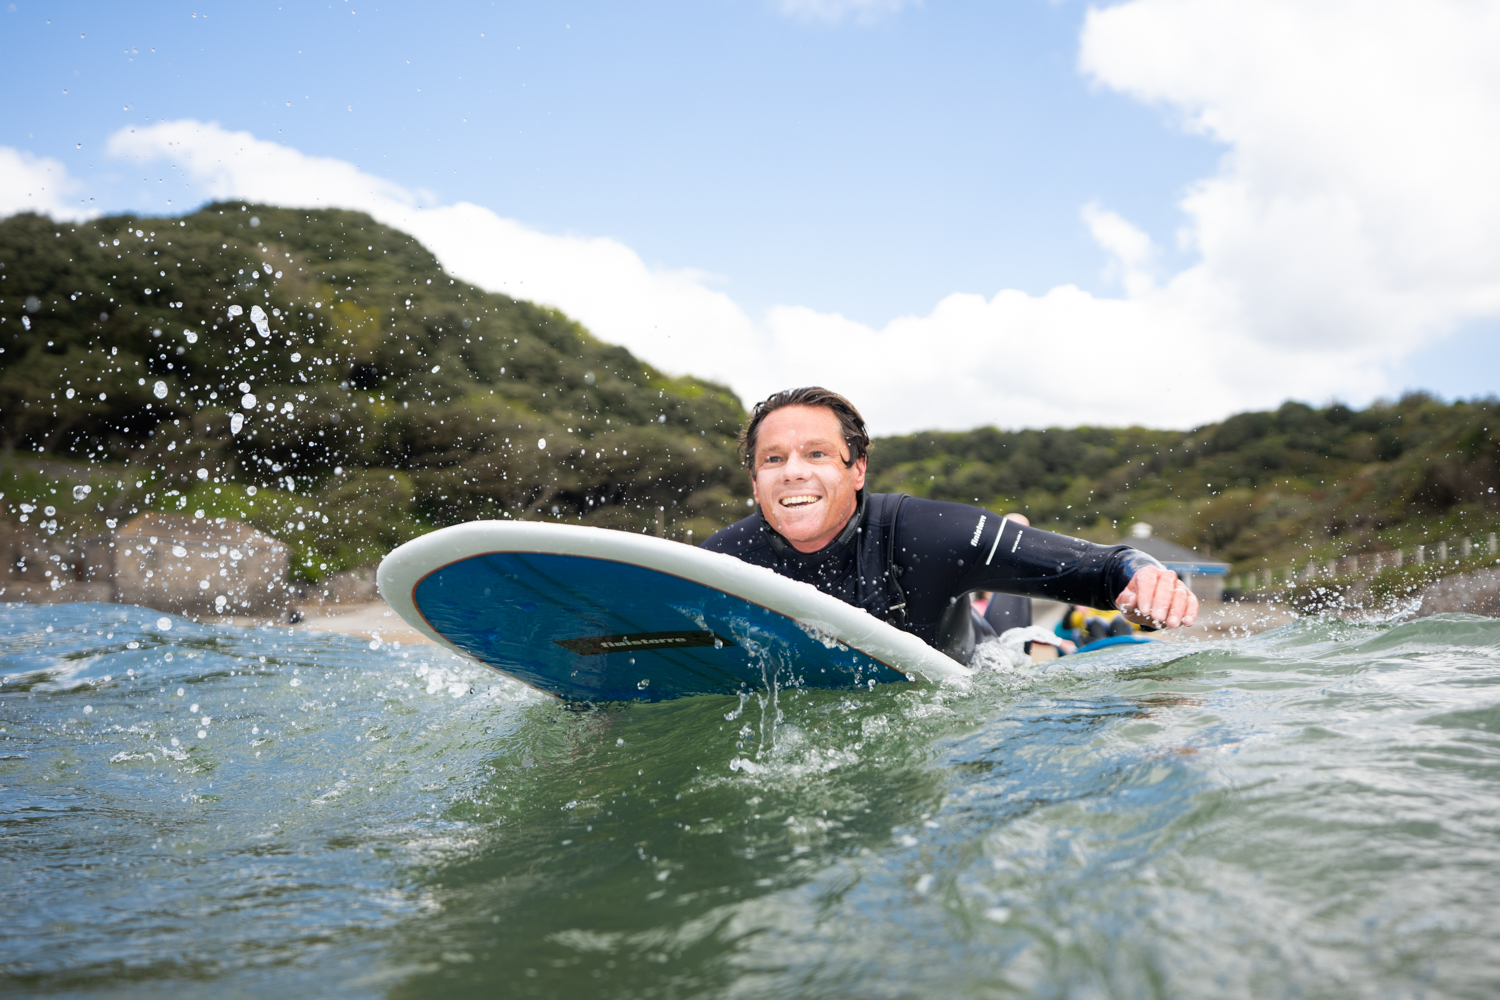 Jack Abbott - Surf Ability - Finisterre-09568.jpg